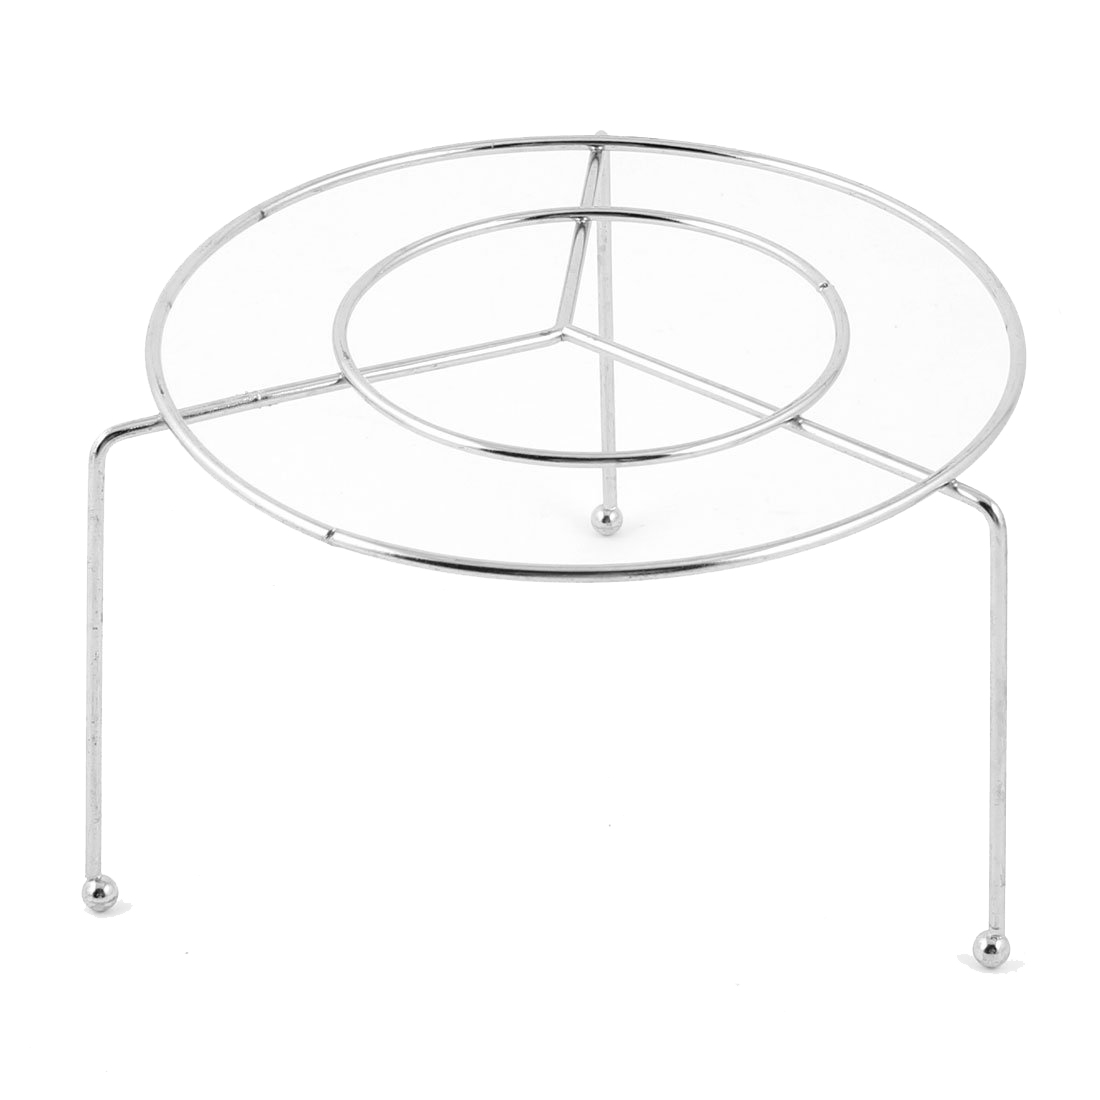 New-Stainless Steel Food Steaming Stand Steamer Rack 11.5cm Dia